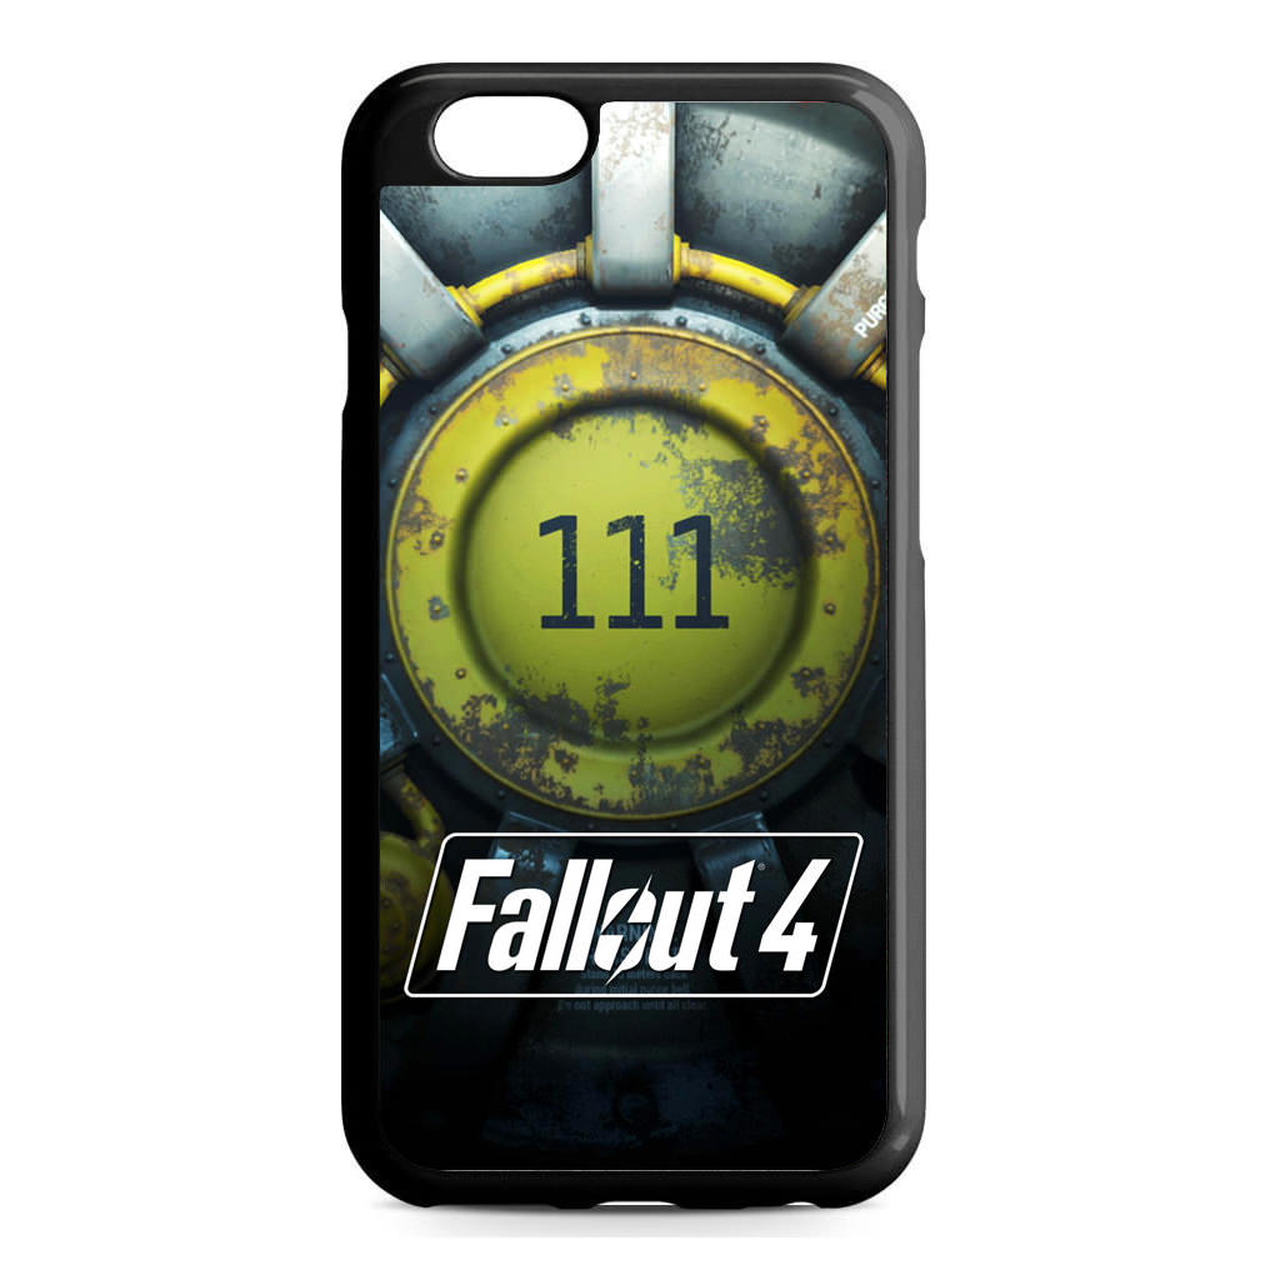 1024x1024 - Fallout iPhone 6 23